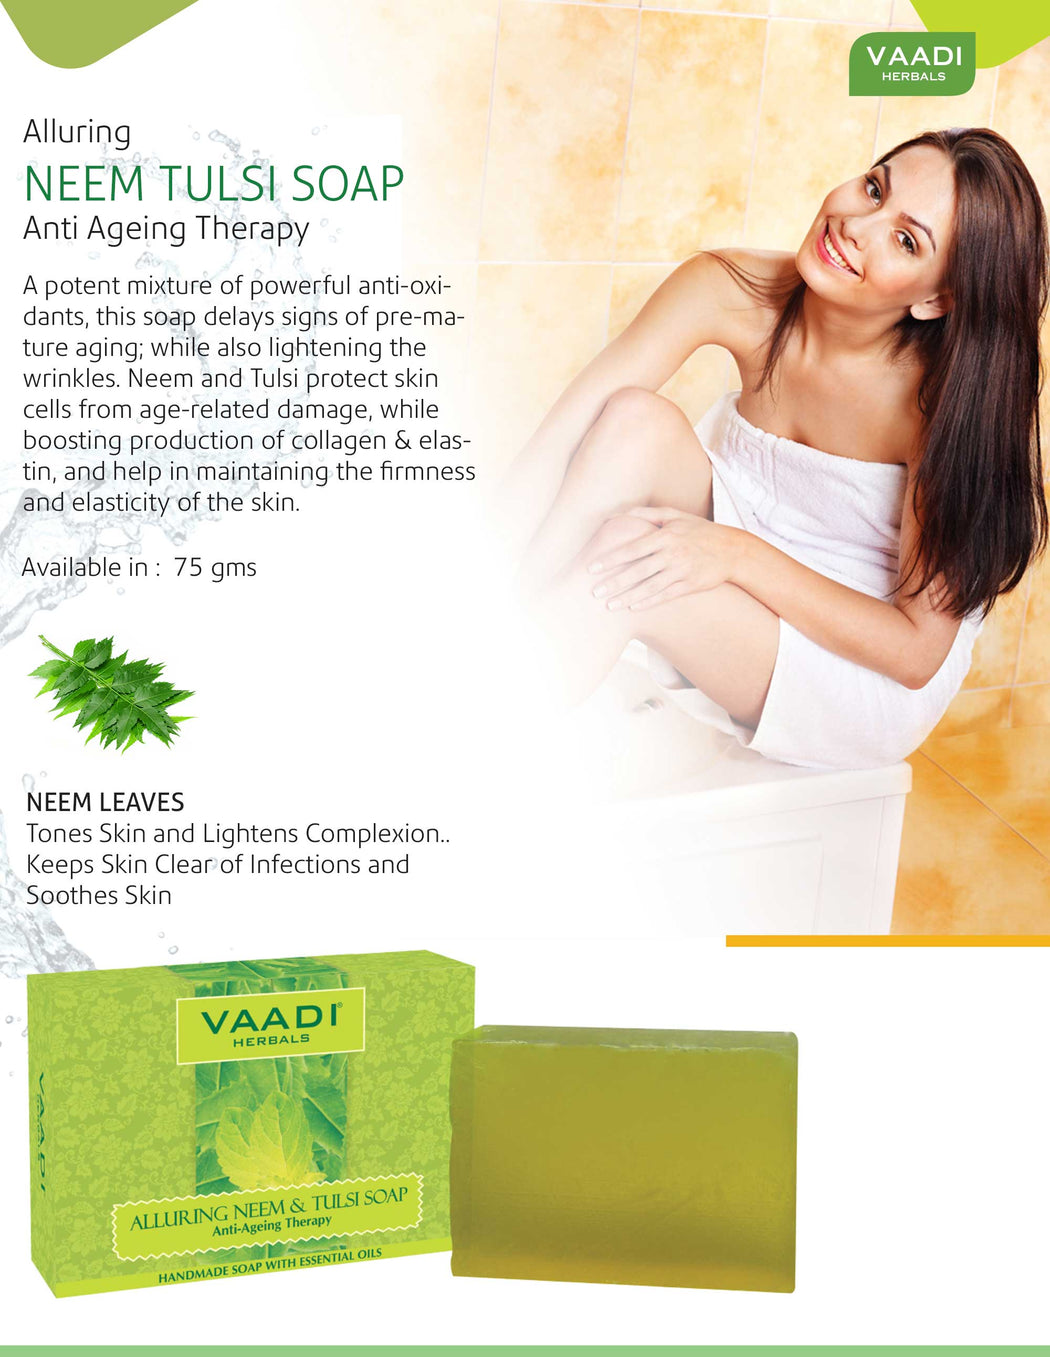 Pack of 12 Alluring Neem-Tulsi Soap with Vitamin E & Tea Tree Oil (12 x 75 gms)